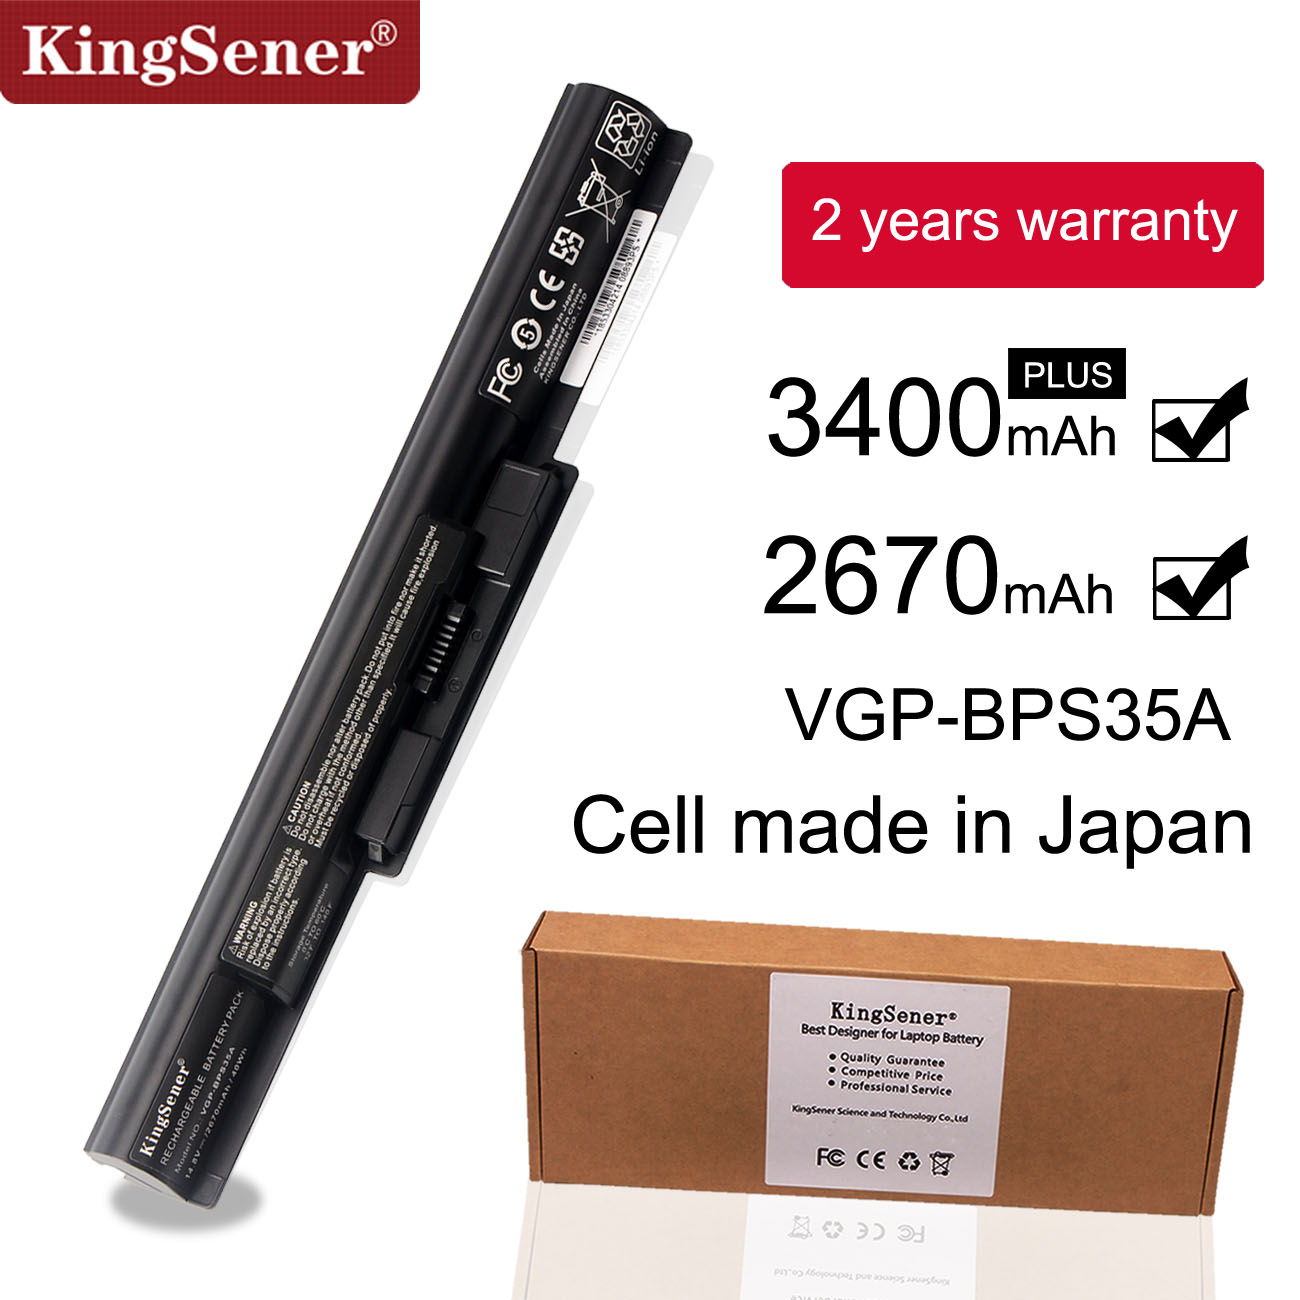 Kingsener Cell-Vgp-Bps35a-Battery Sony Vaio For Fit 14e/15e/Svf1521a2e/.. Japanese